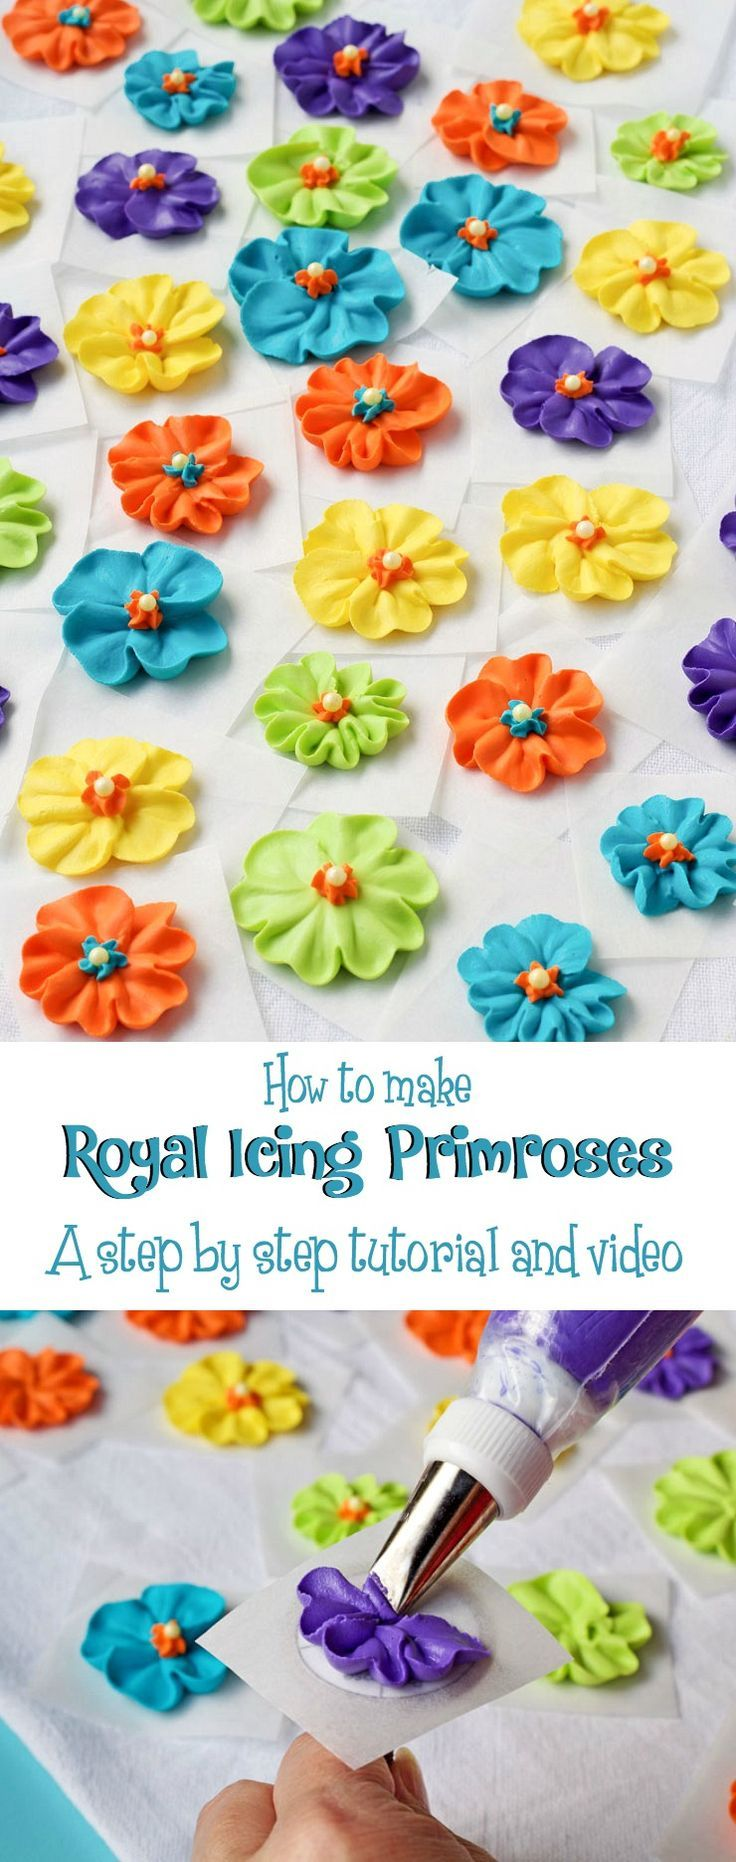 How to Make a Royal Icing Primrose with a Step by Step Video via http://www.thebearfootbaker.com